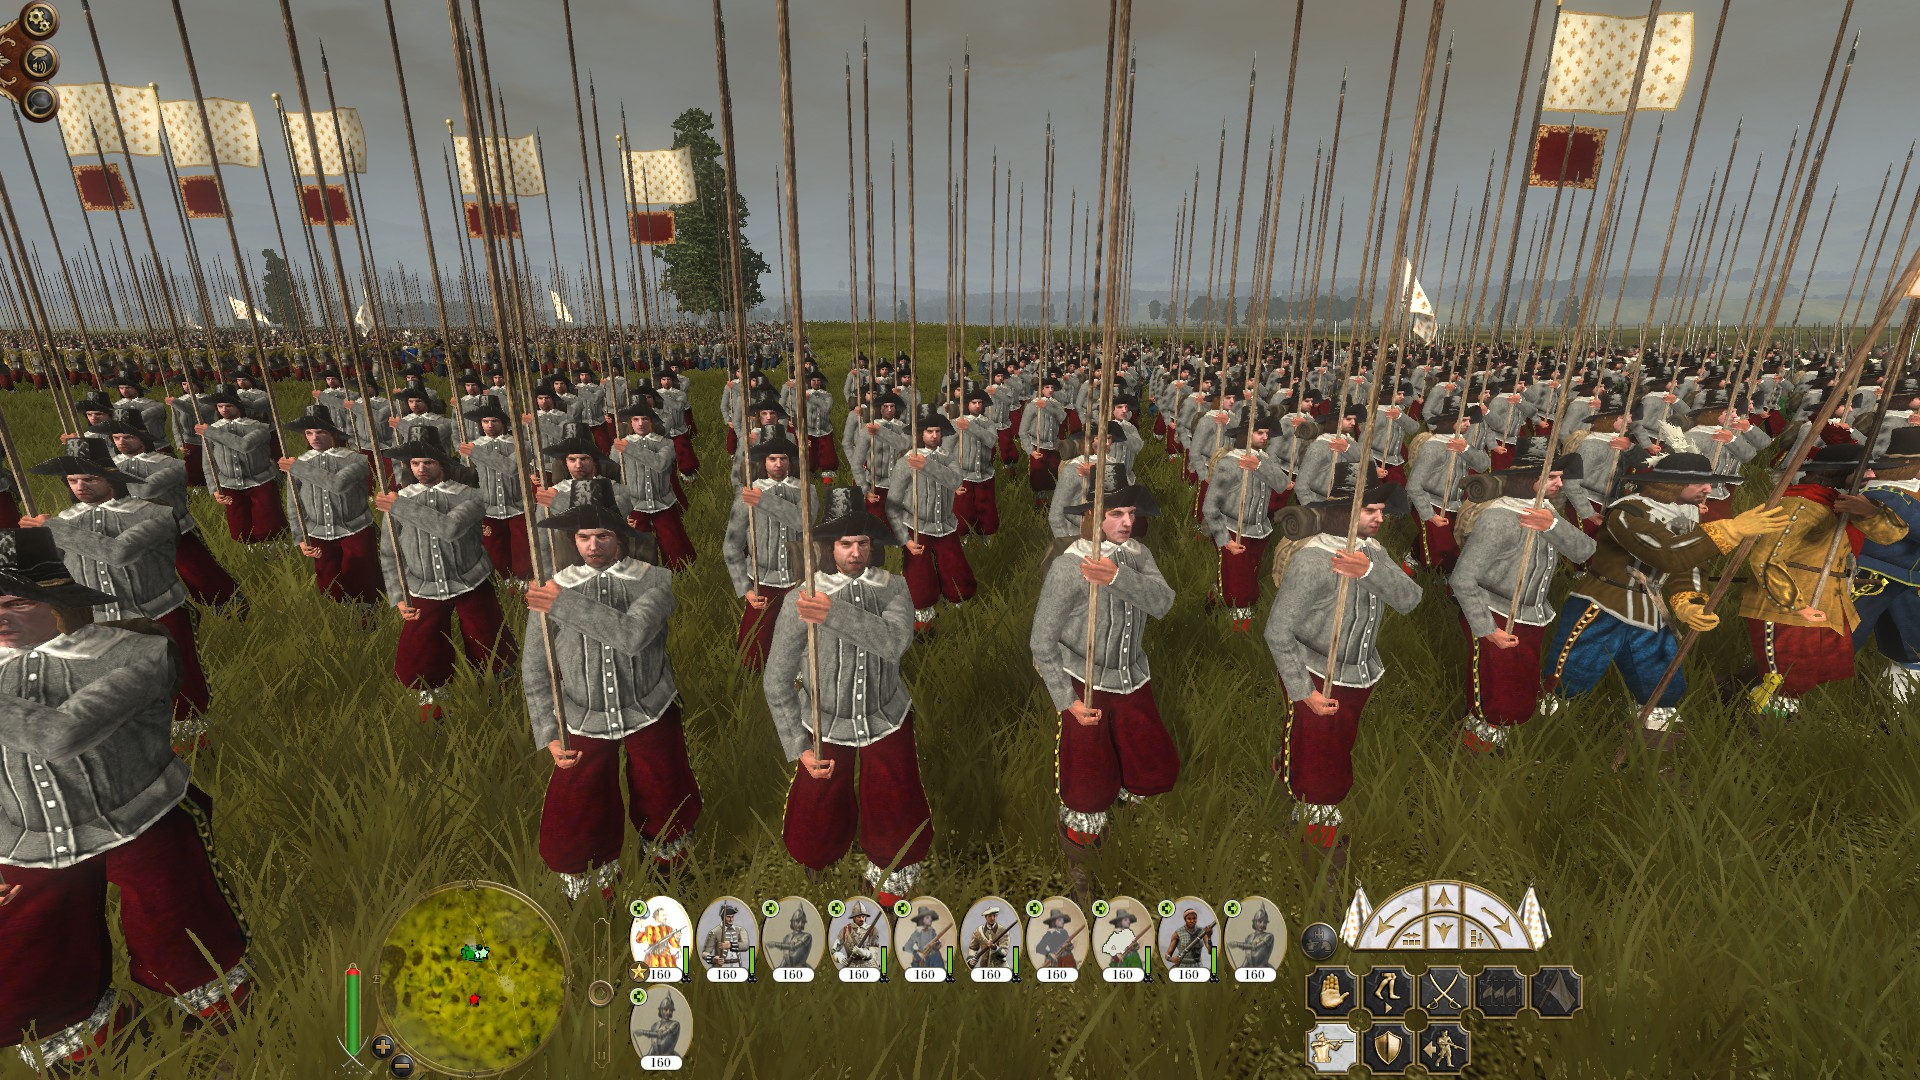 Colonialism 1600AD Empire Total War mod